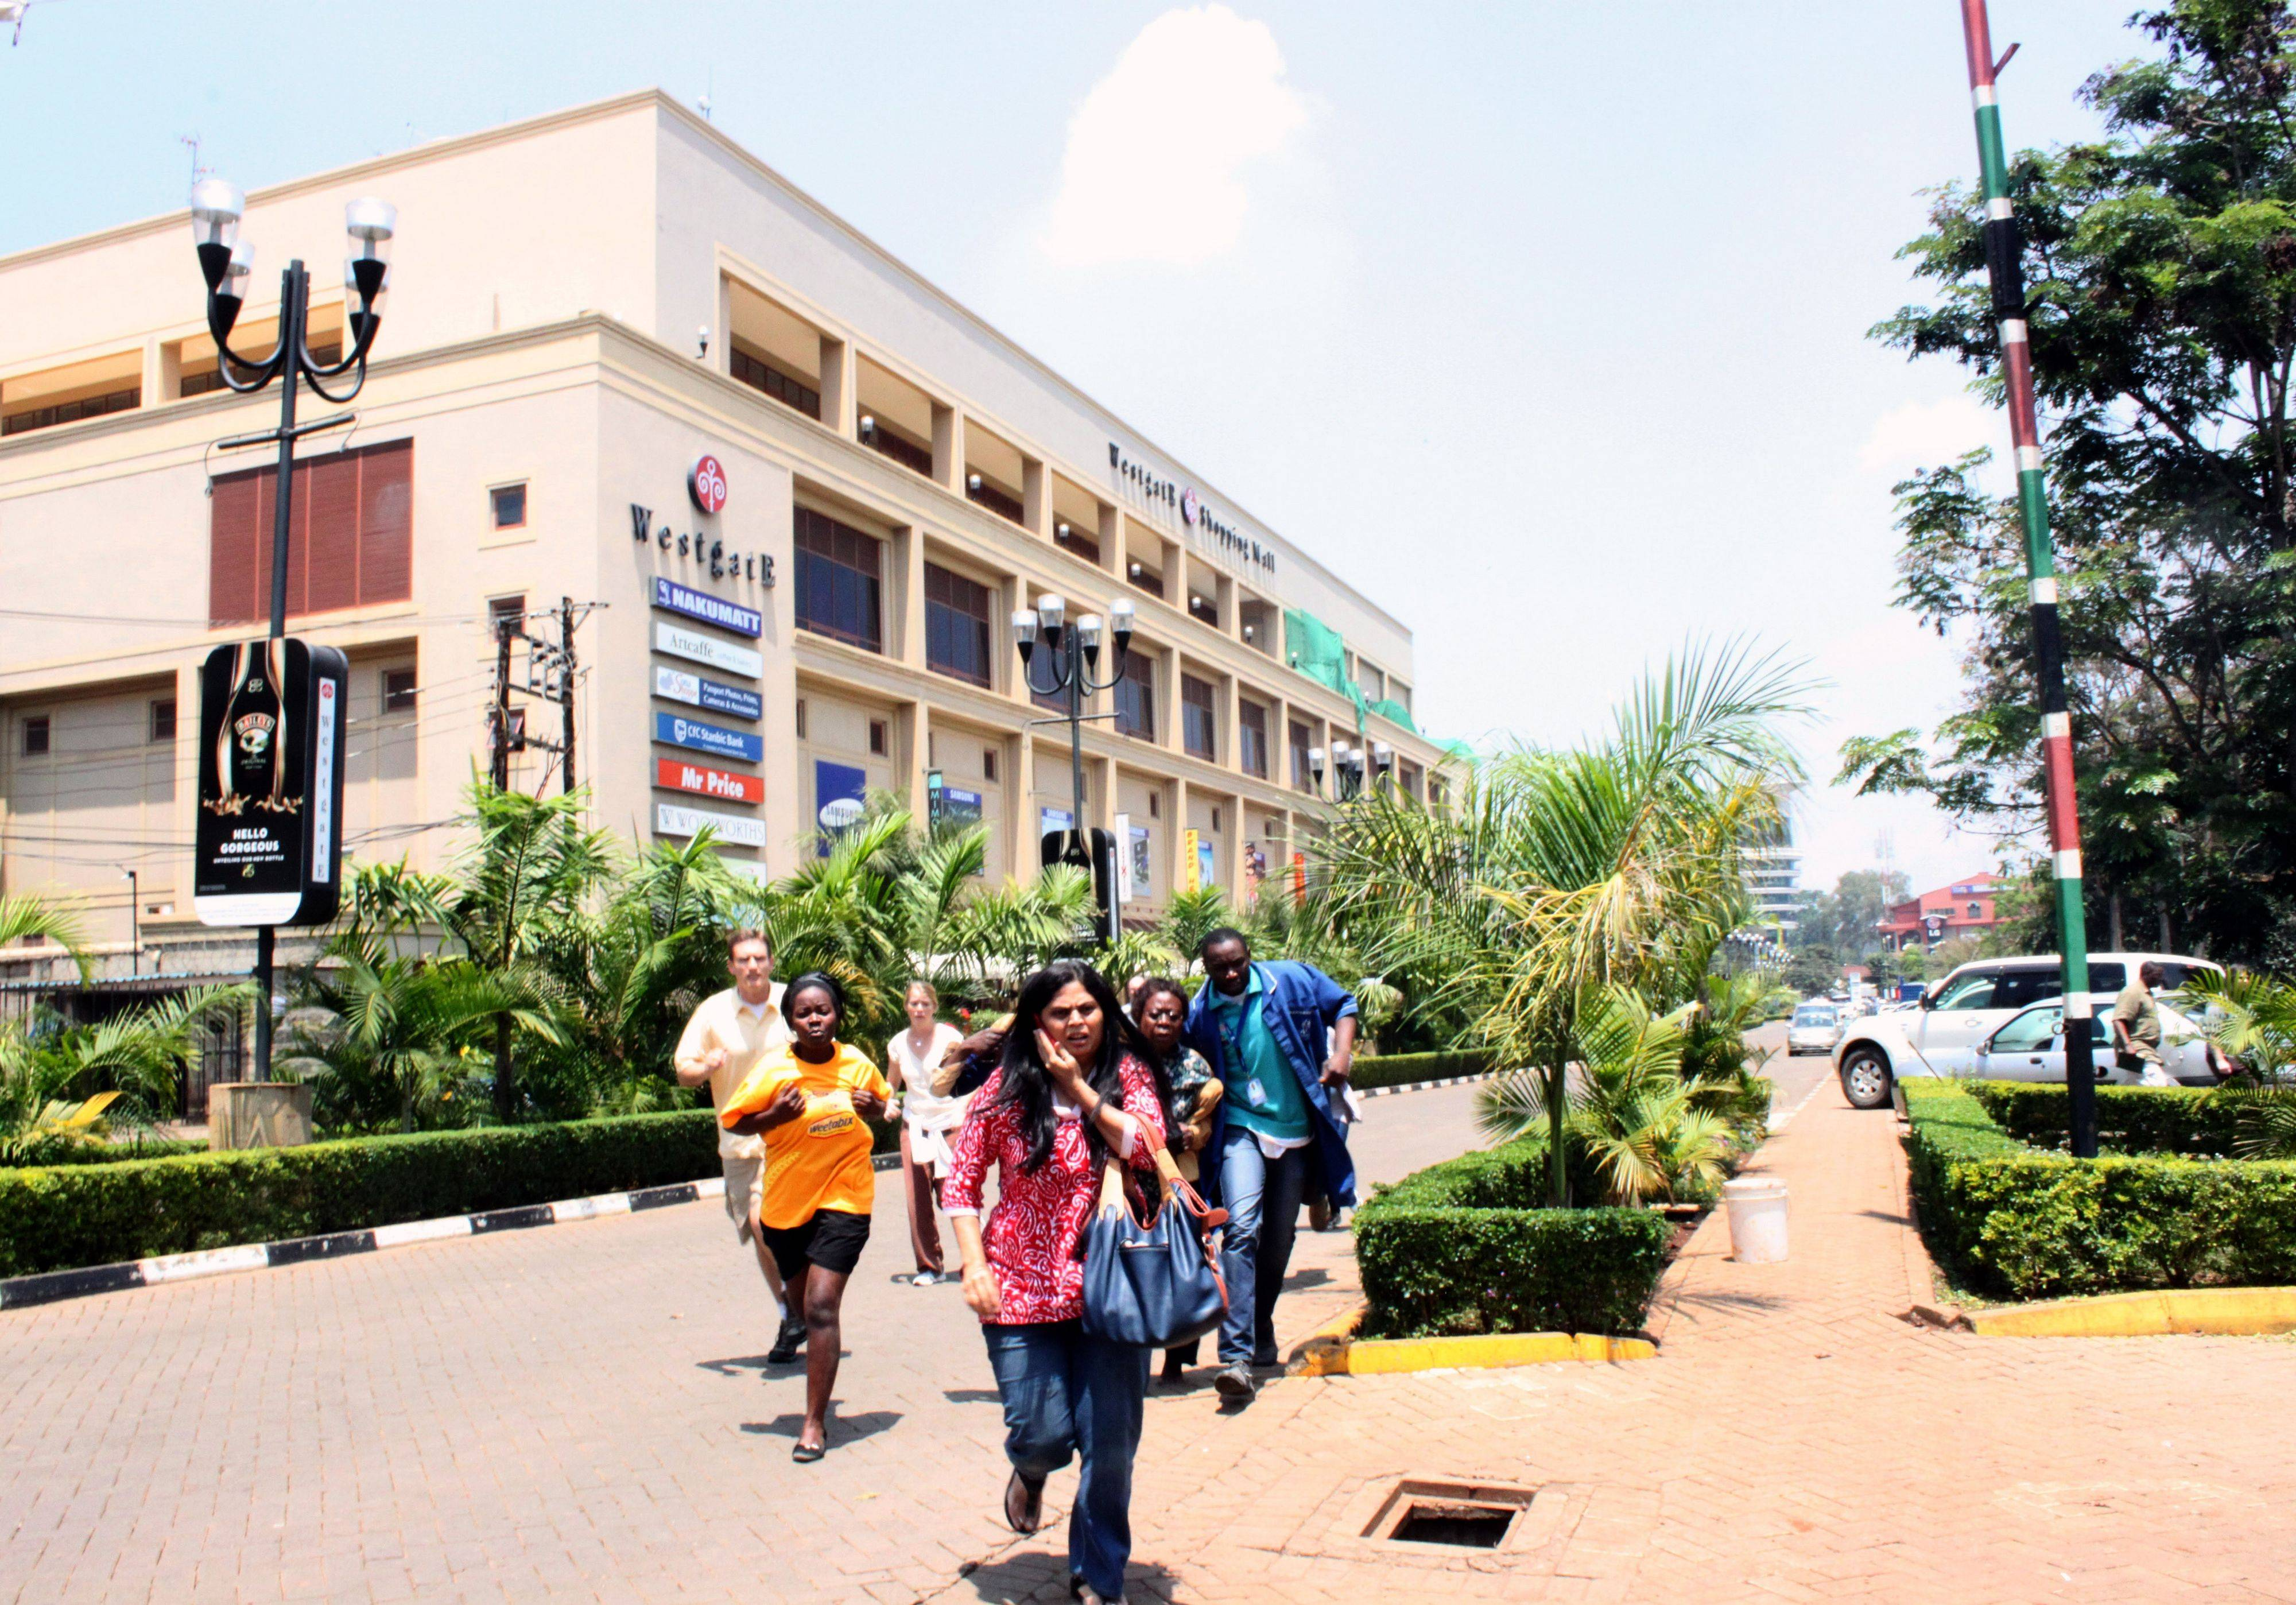 People run from the Westgate Mall, an upscale shopping mall in Nairobi, Kenya, where shooting erupted Saturday when armed men staged an attack.